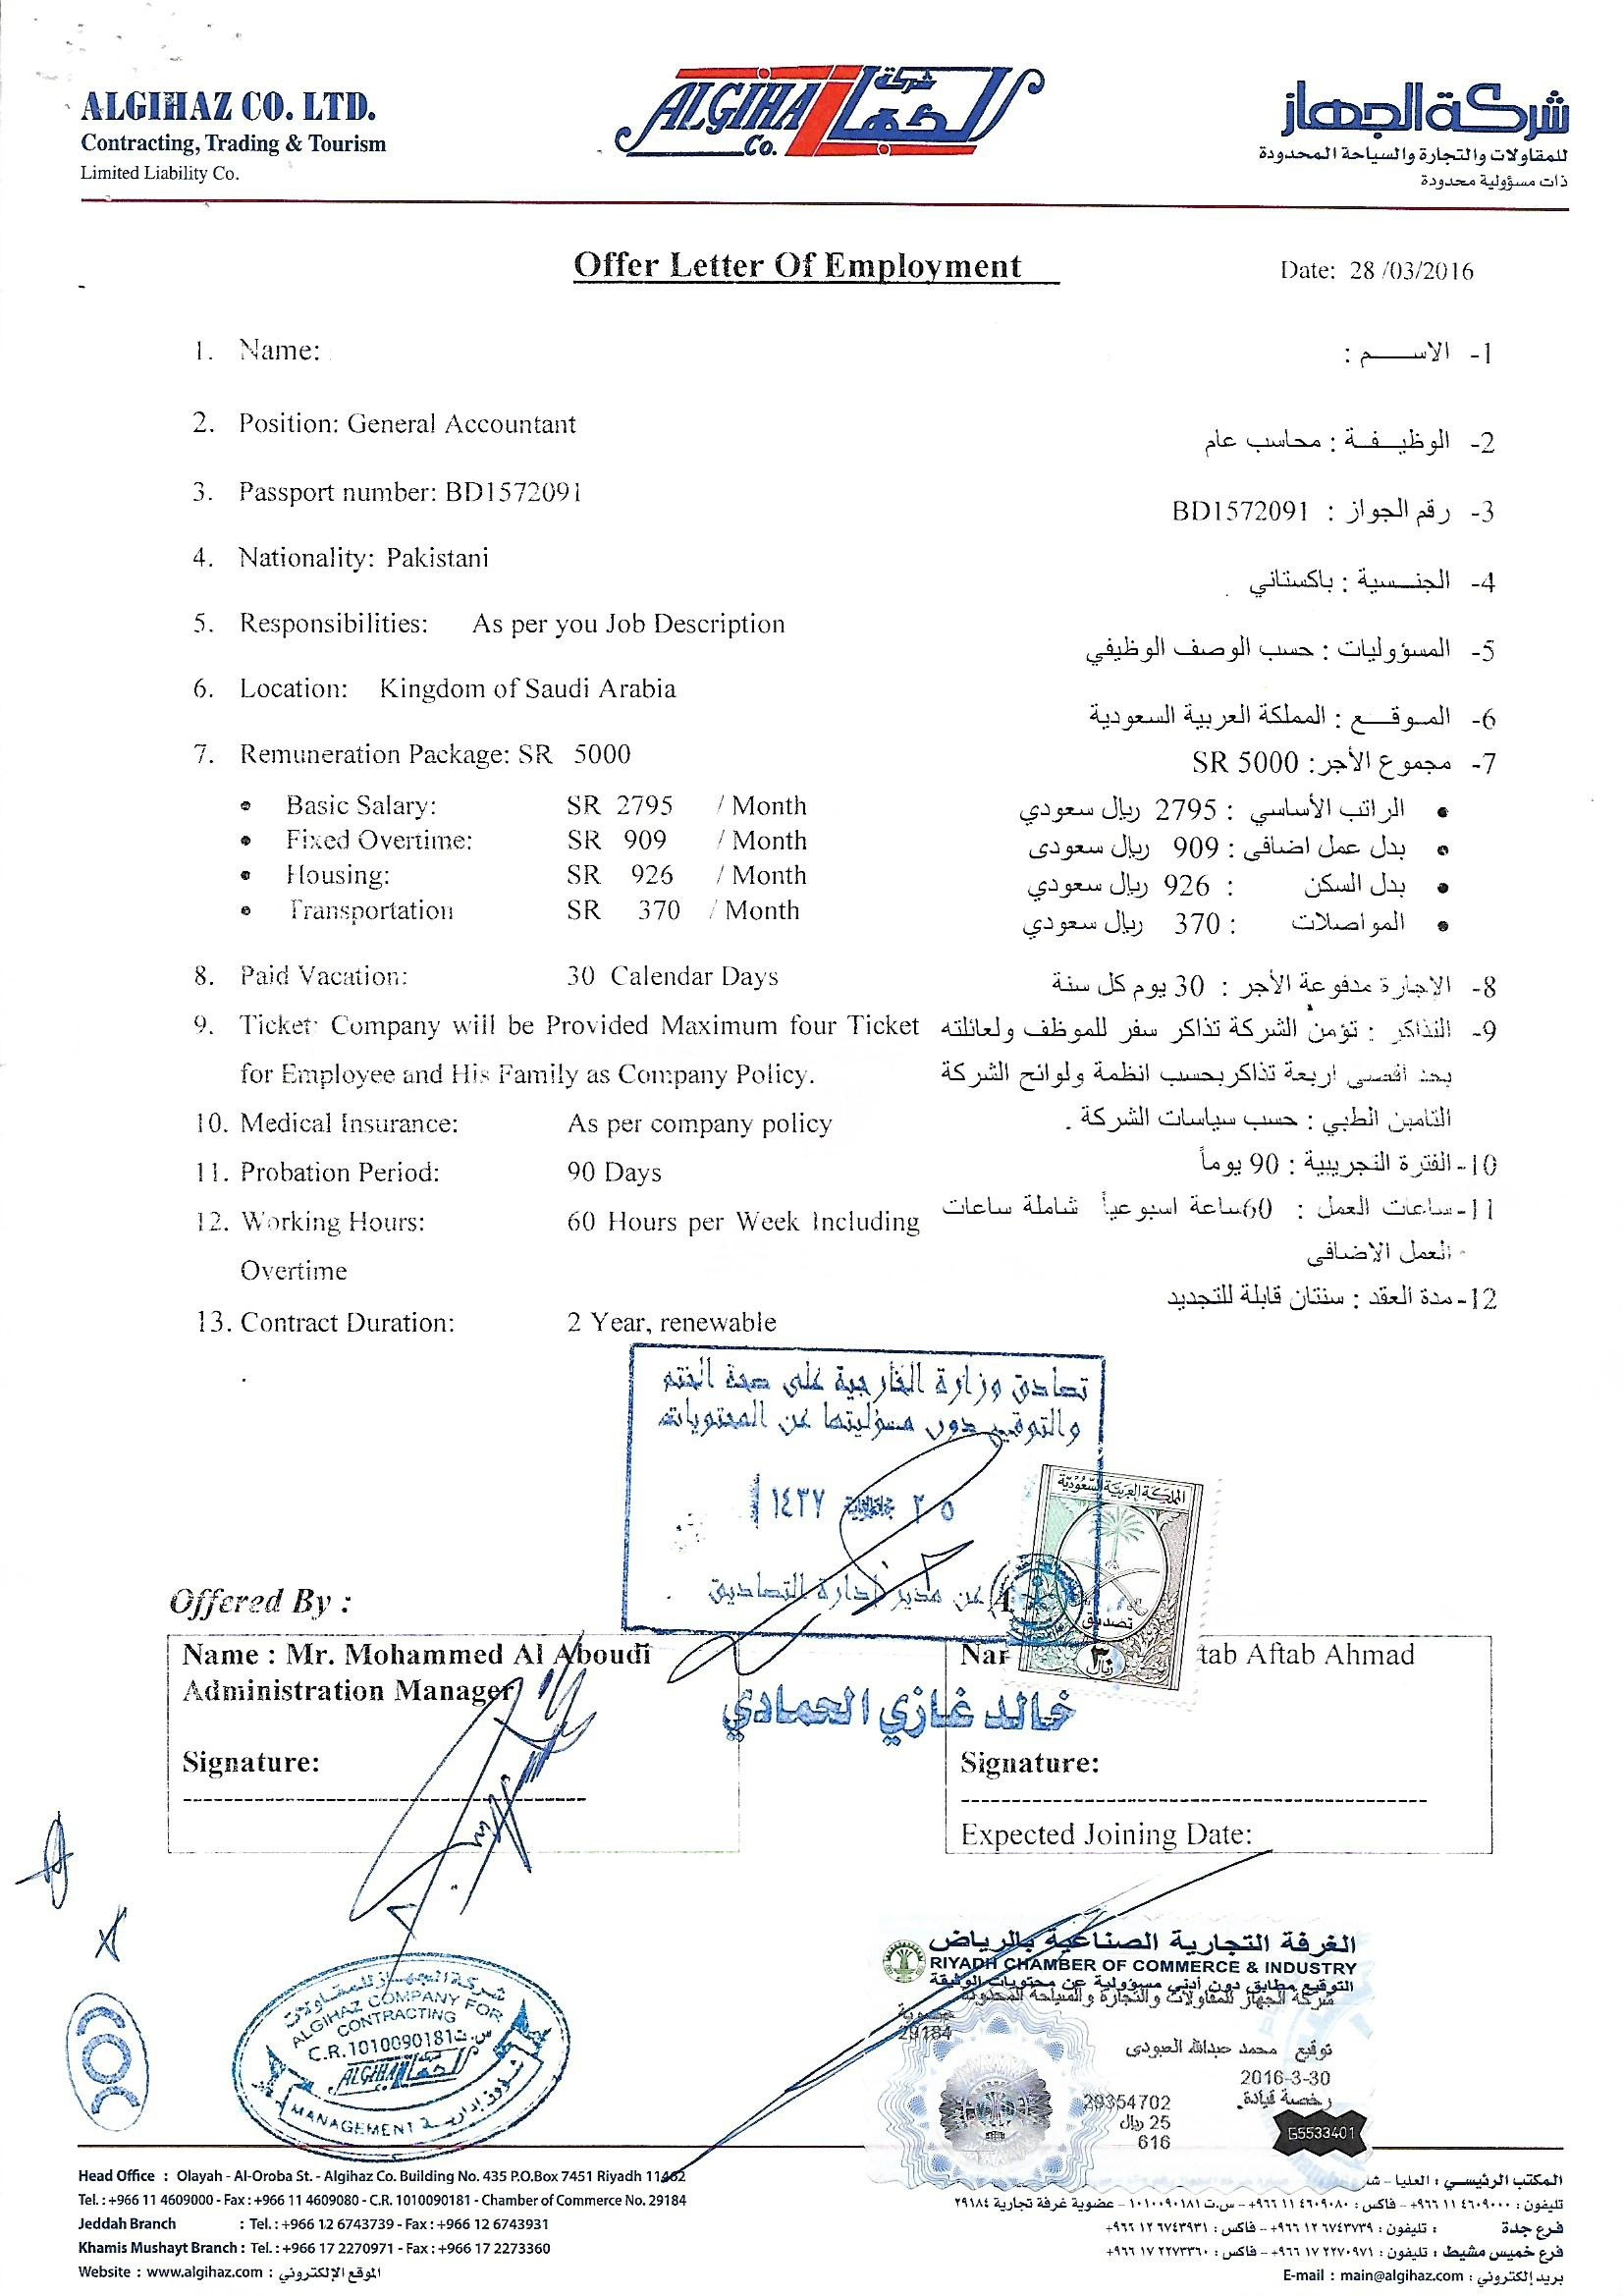 Document degree attestation from saudi embassy ksa embassy contract letteroffer letter should not be older than one year date should be mentioned on contract letter hand written contract will not be accepted altavistaventures